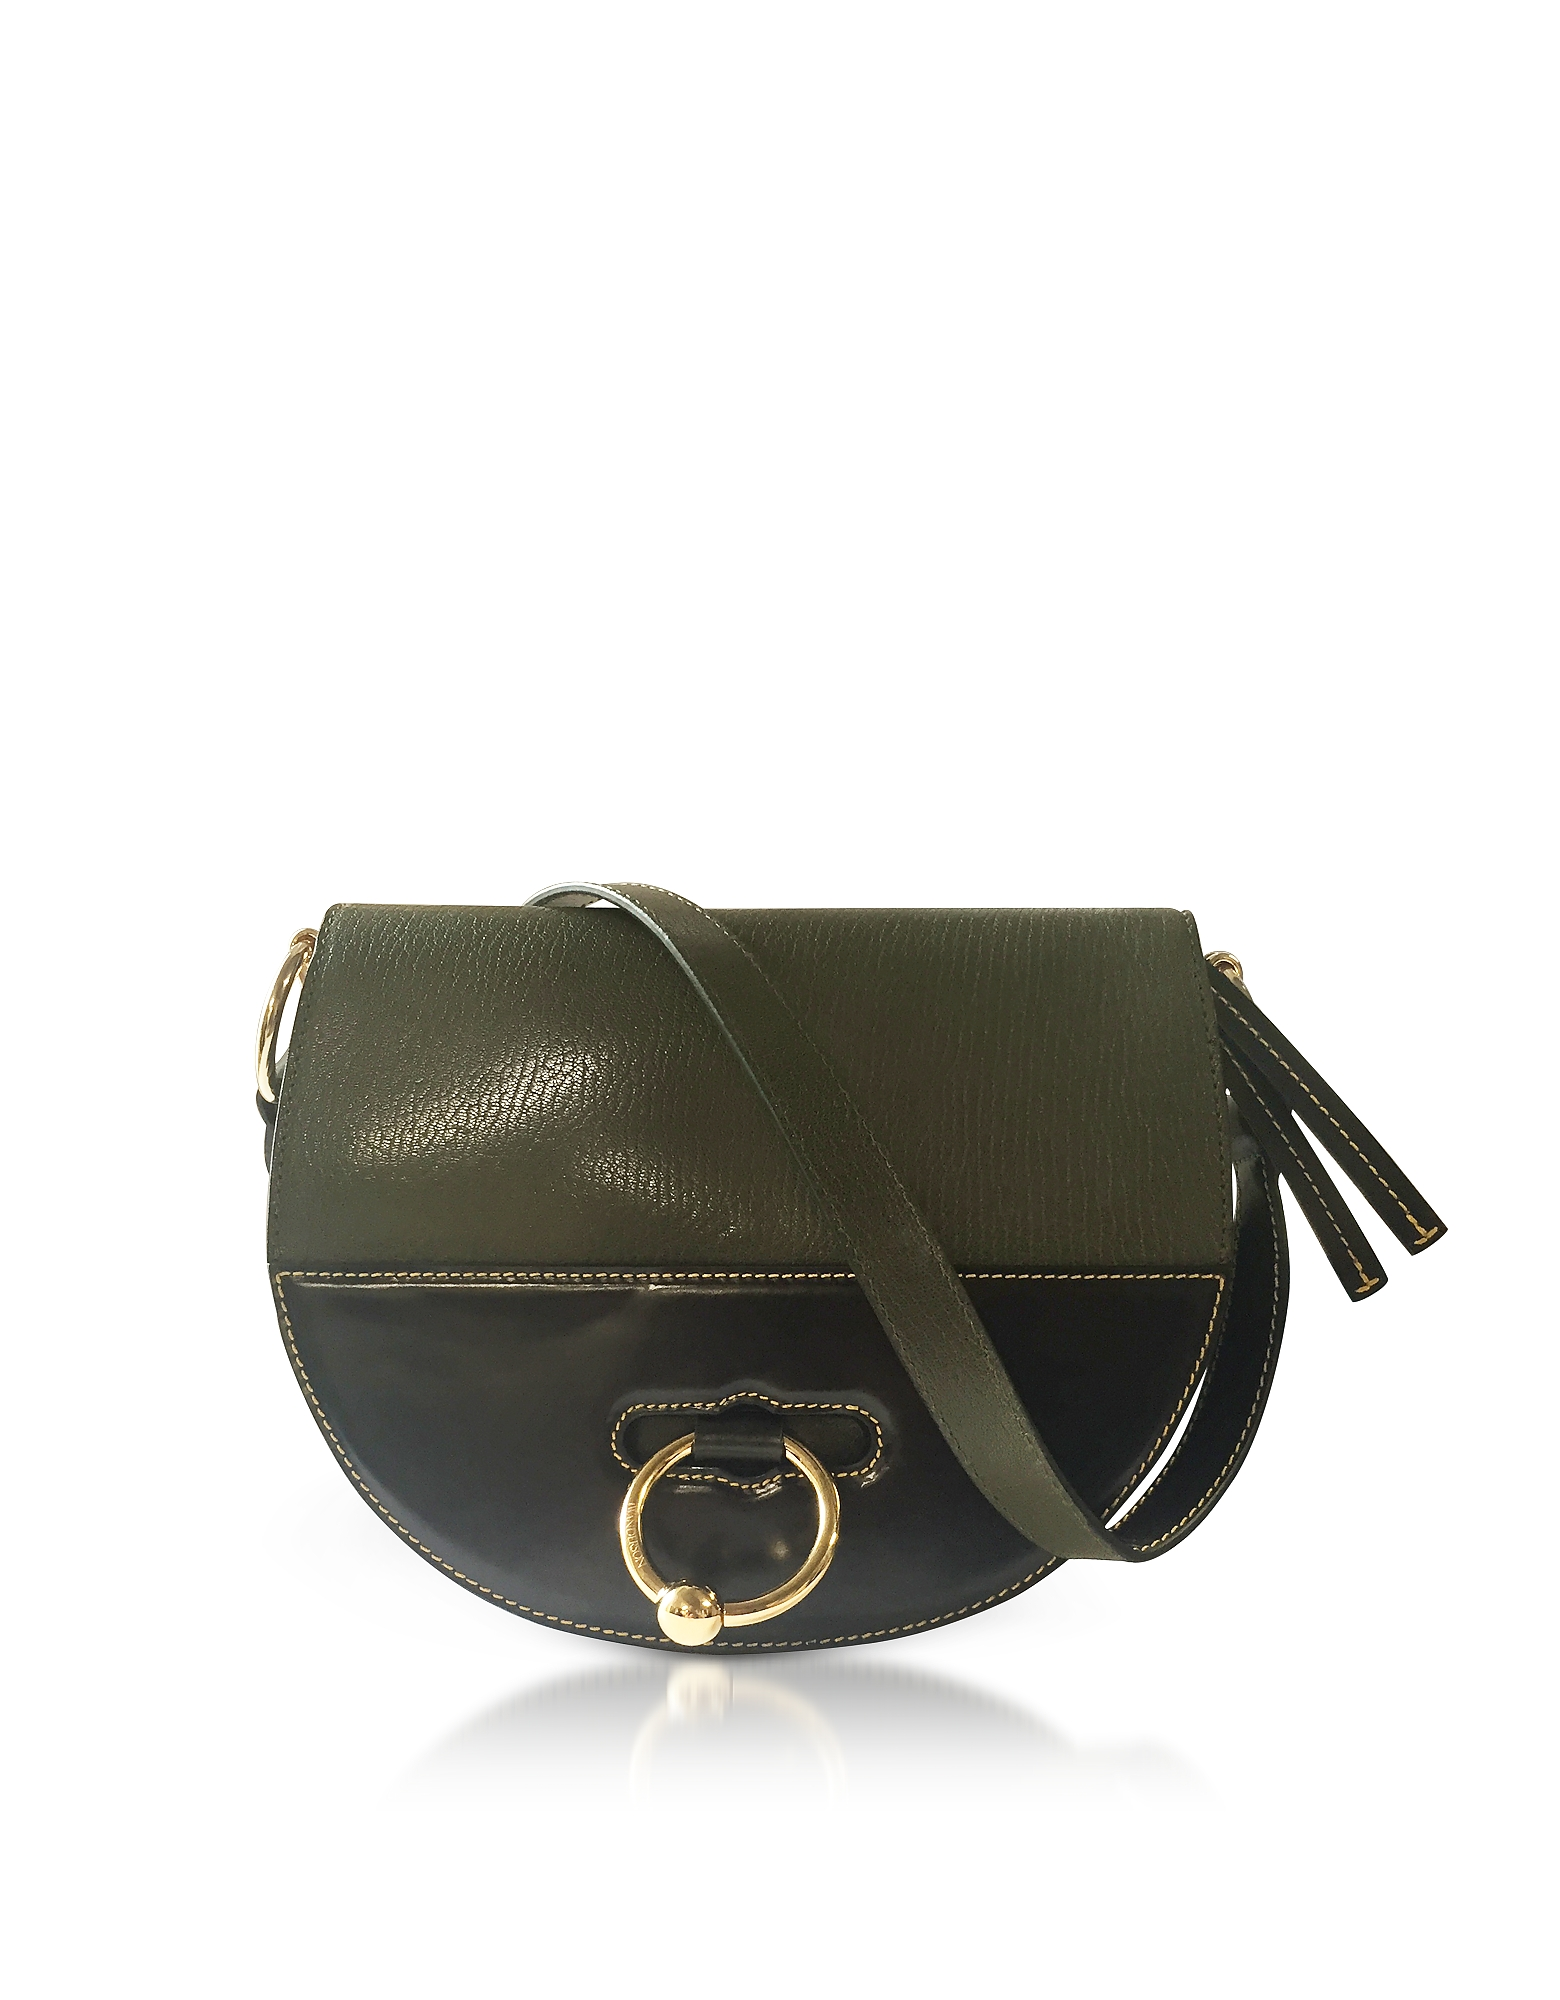 J.W.ANDERSON Jw Anderson Khaki Green Latch Leather Shoulder Bag